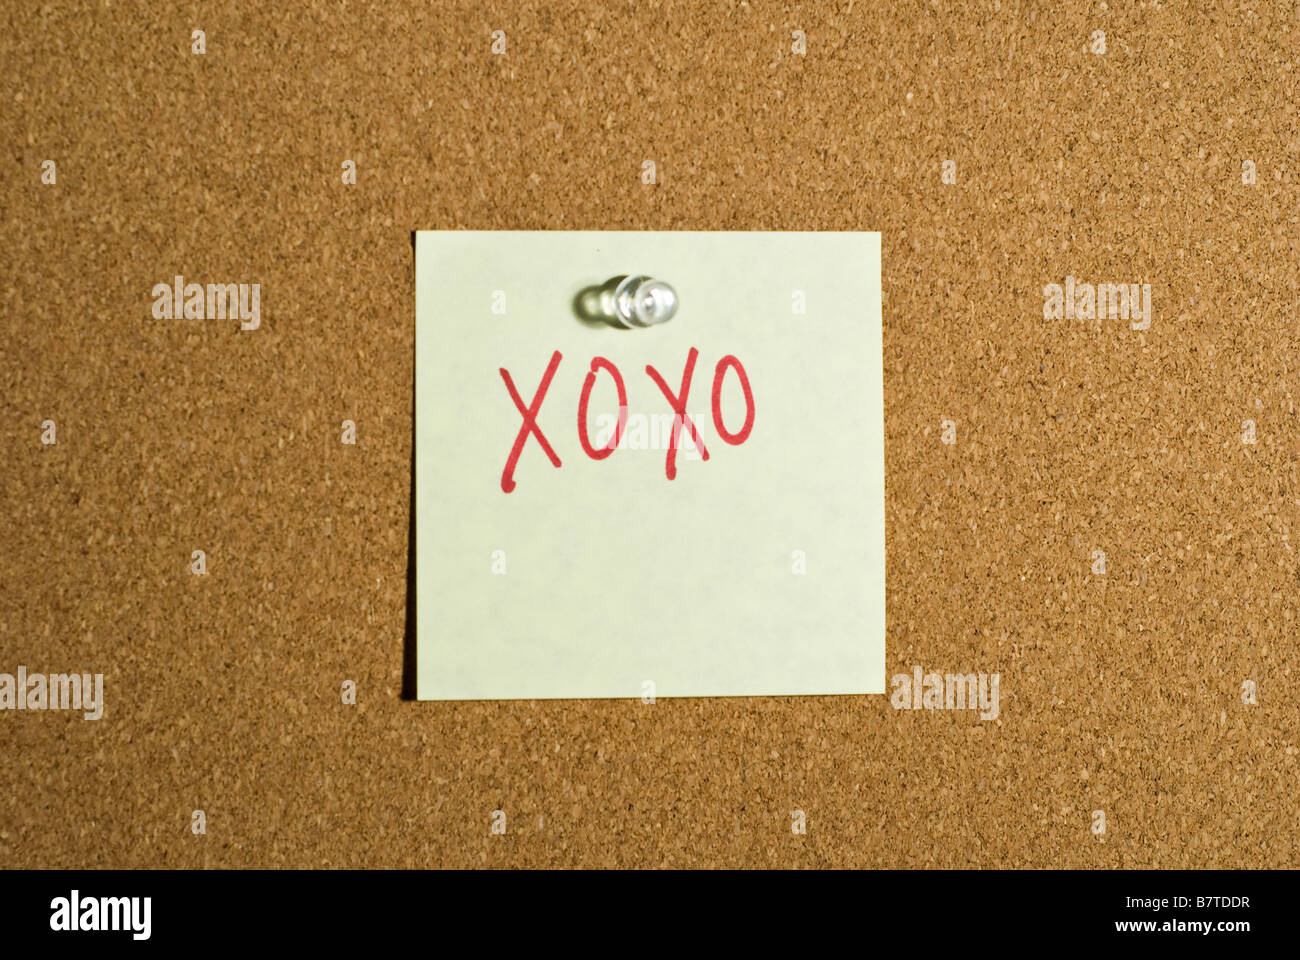 A post it note or memo on a cork board that says XOXO for hugs and kisses for Valentines's day. - Stock Image